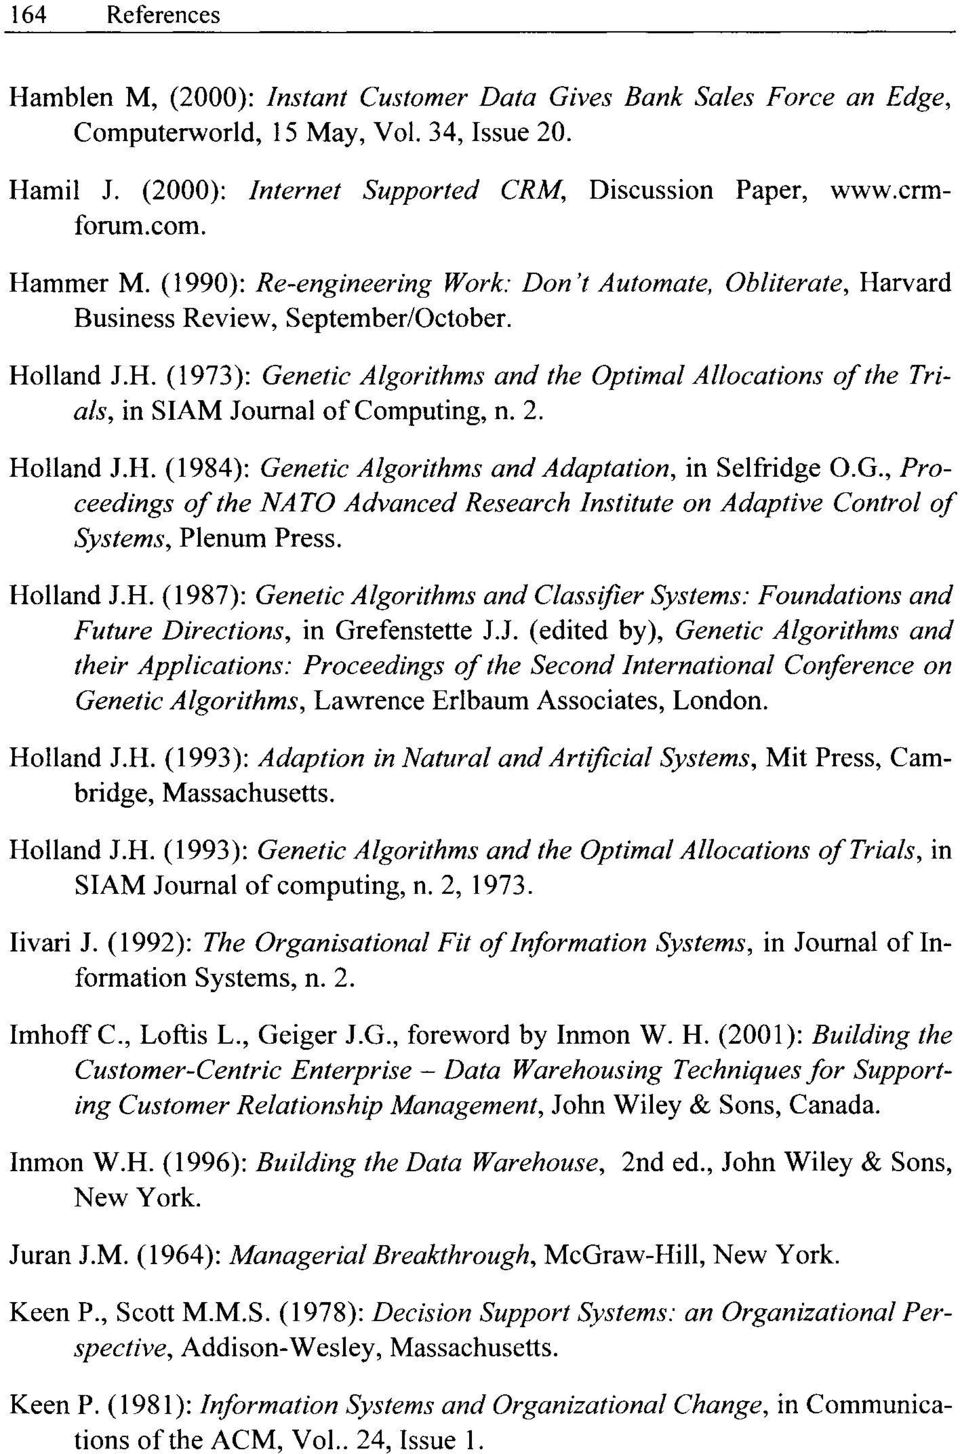 2. Holland J.H. (1984): Genetic Algorithms and Adaptation, in Selfridge O.G., Proceedings of the NATO Advanced Research Institute on Adaptive Control of Systems, Plenum Press. Holland J.H. (1987): Genetic Algorithms and Classifier Systems: Foundations and Future Directions, in Grefenstette J.